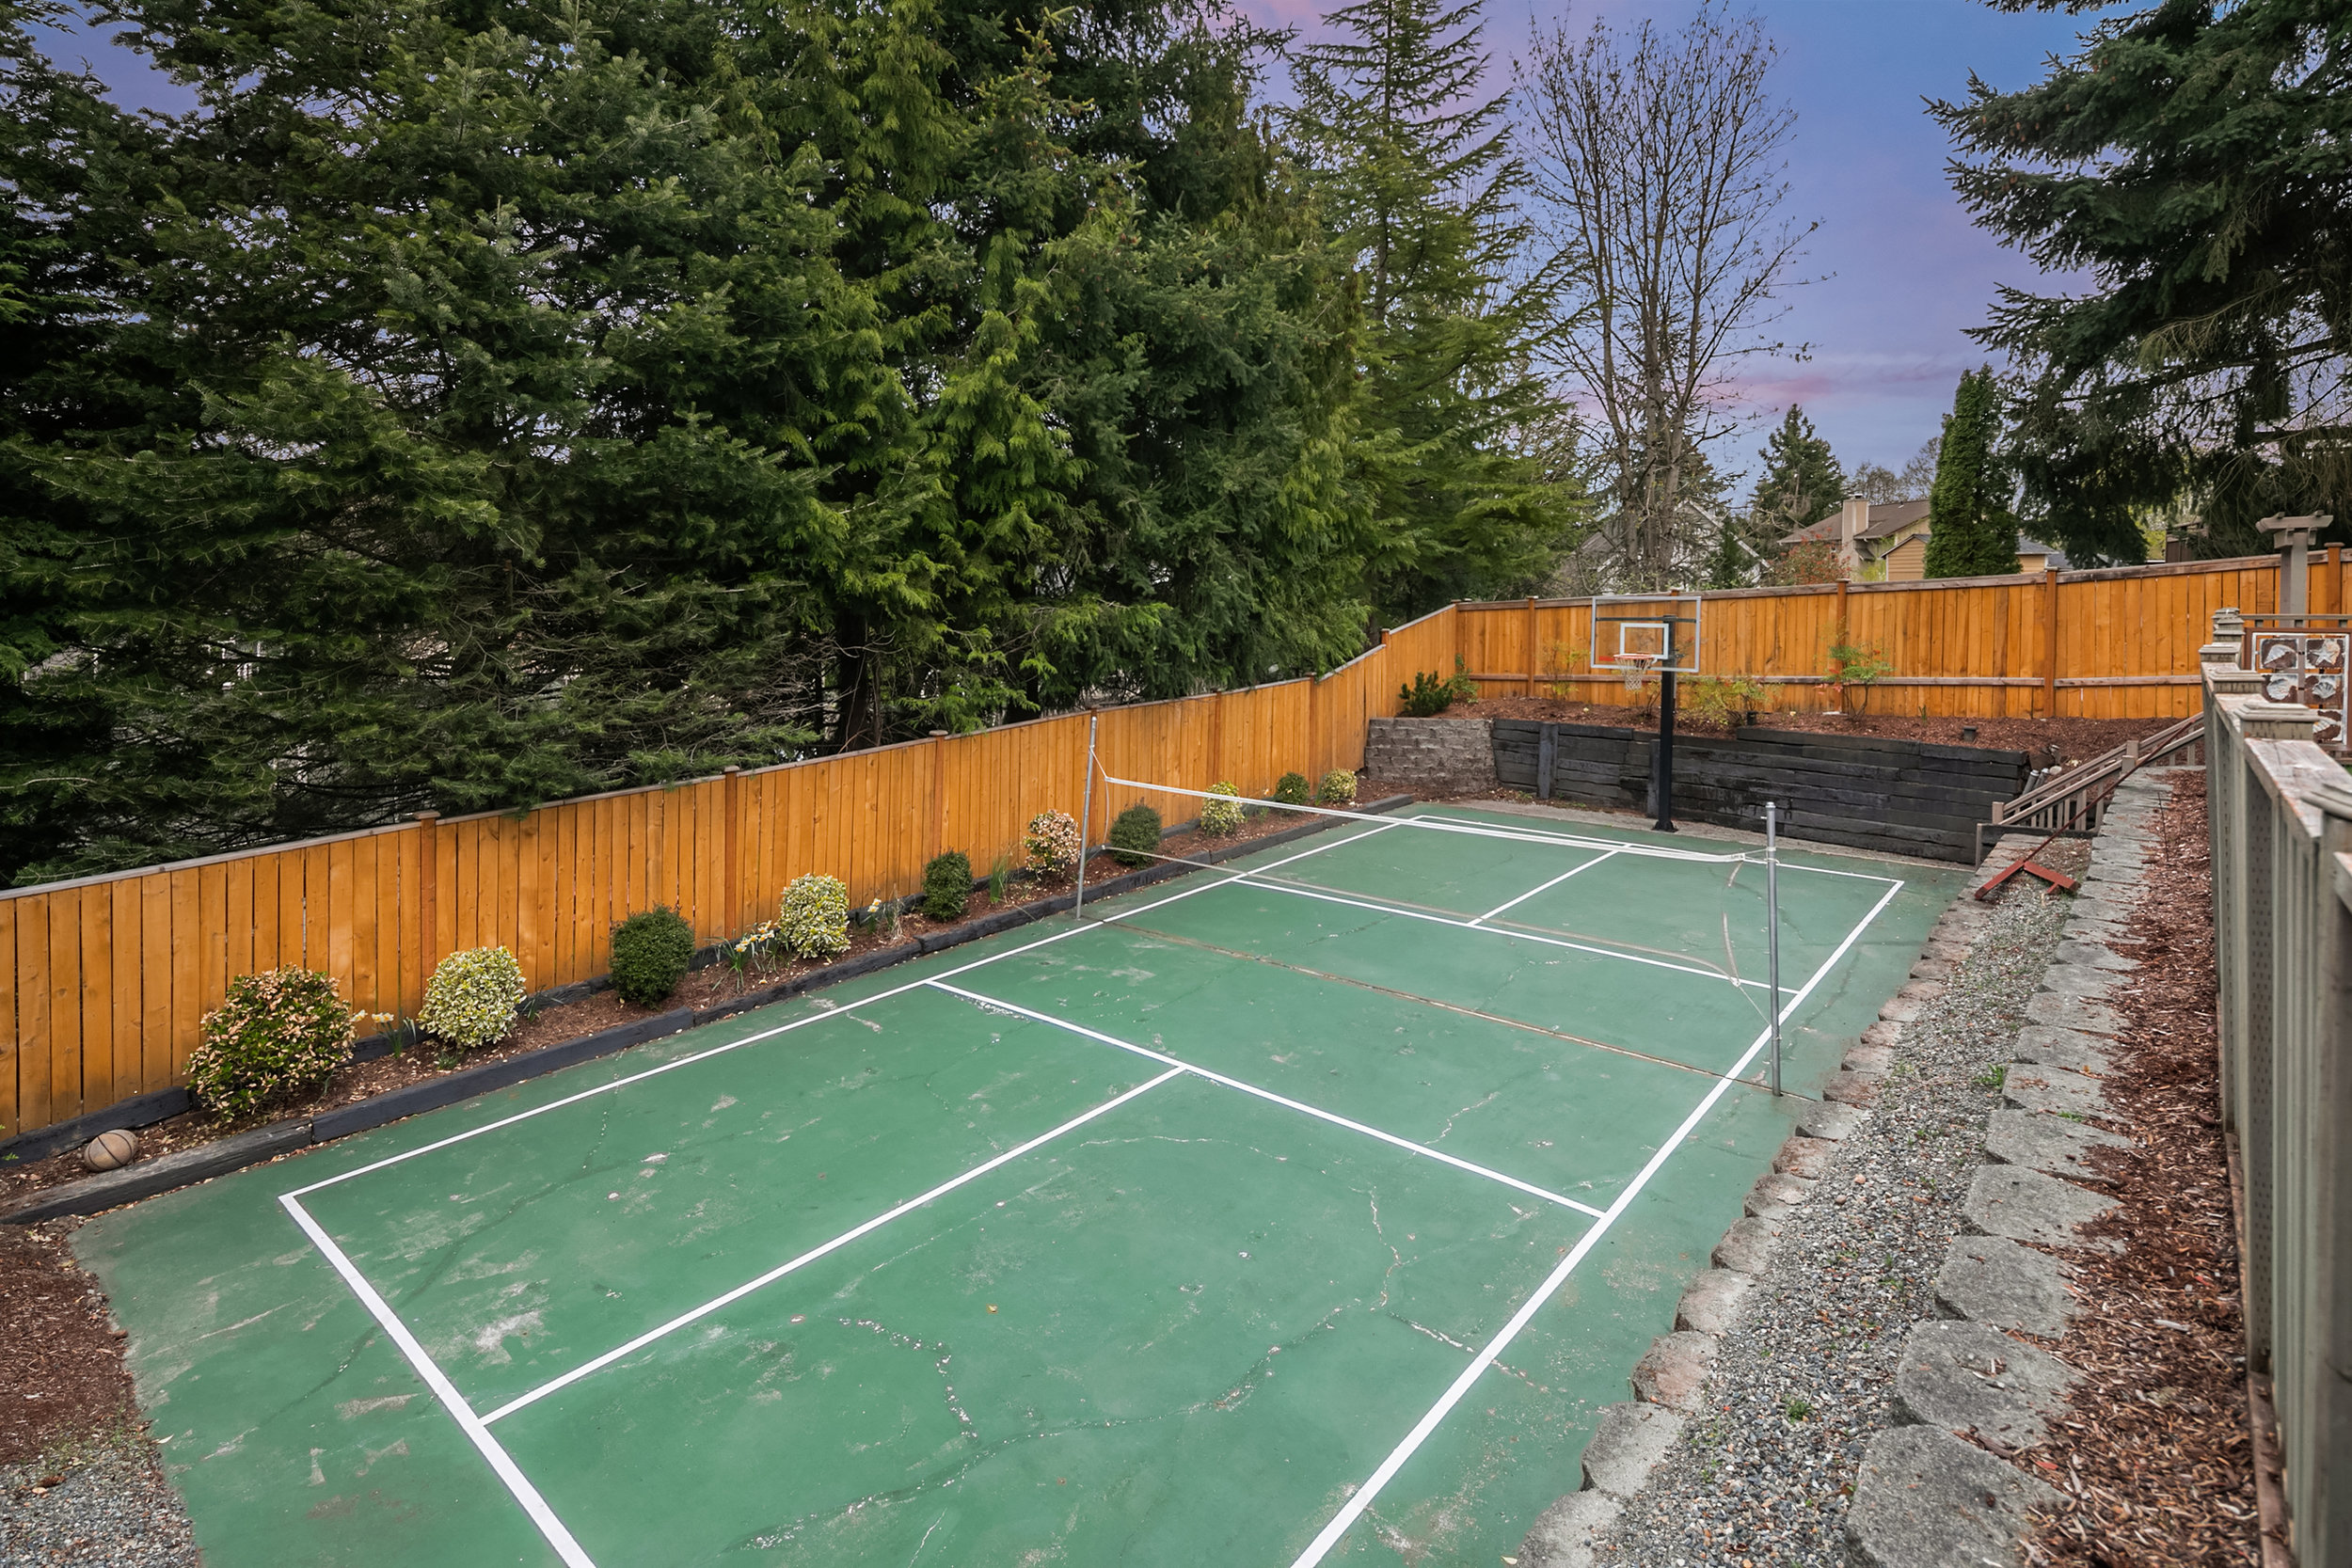 An expansive sports court, landscaped and ready for a game of pickleball!